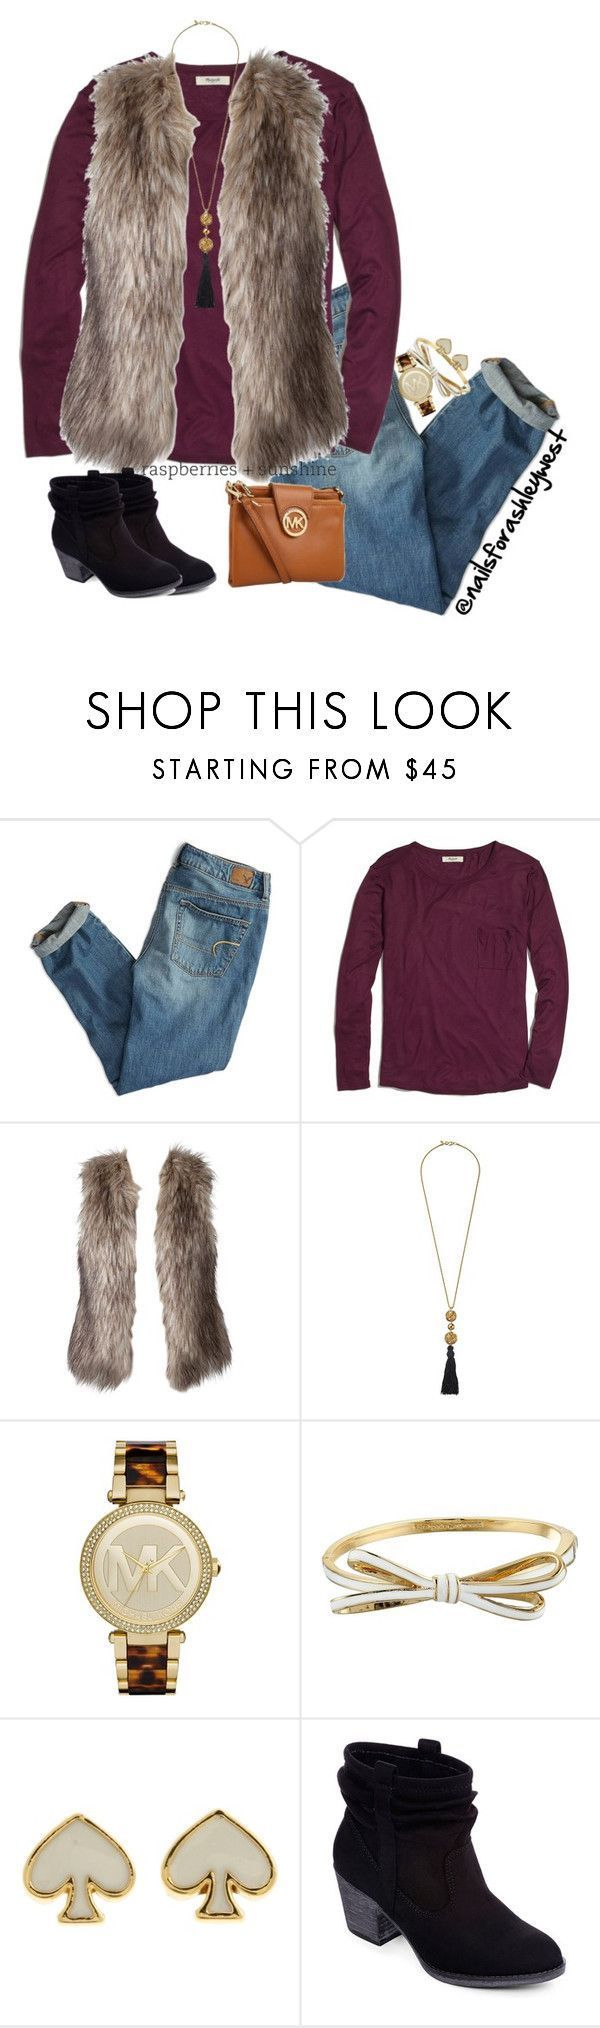 """Ehh....."" by nailsforashleywest � liked on Polyvore featuring American Eagle Outfitters, Madewell, Kenneth Jay Lane, Michael Kors, Kate Spade, Rocket Dog, women's clothing, women's fashion, women and female"